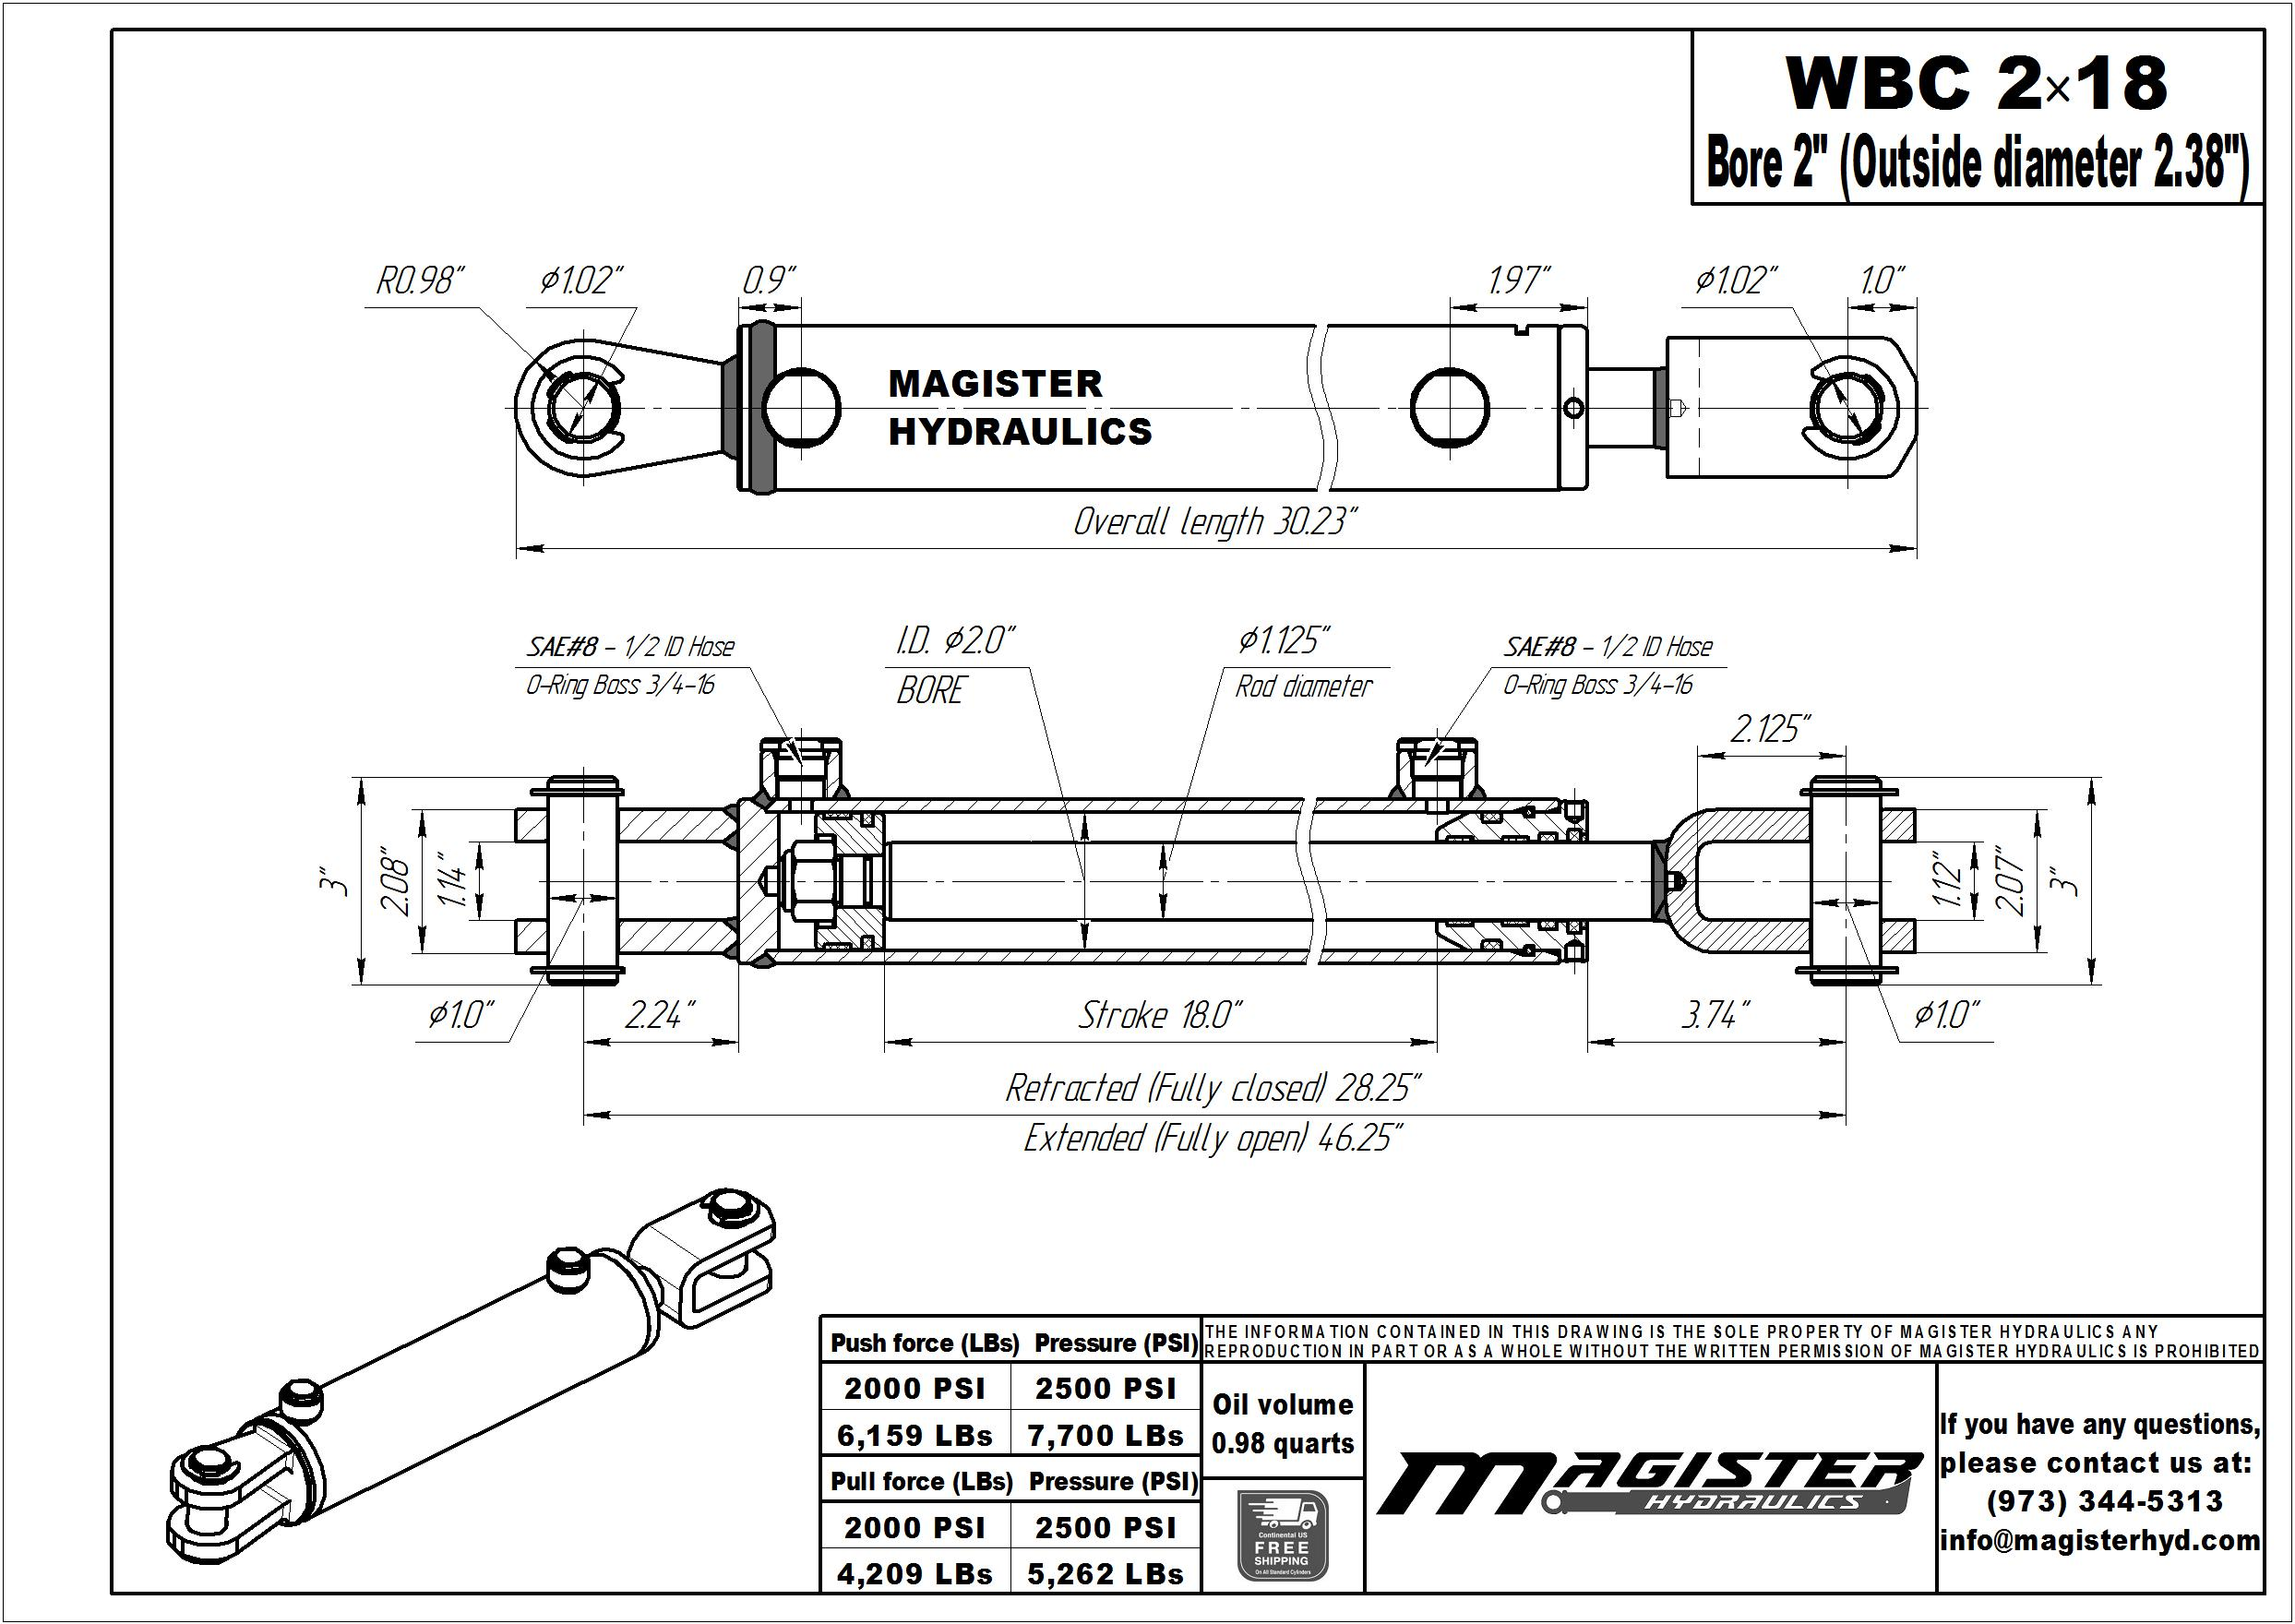 2 bore x 18 stroke hydraulic cylinder, ag clevis double acting cylinder | Magister Hydraulics